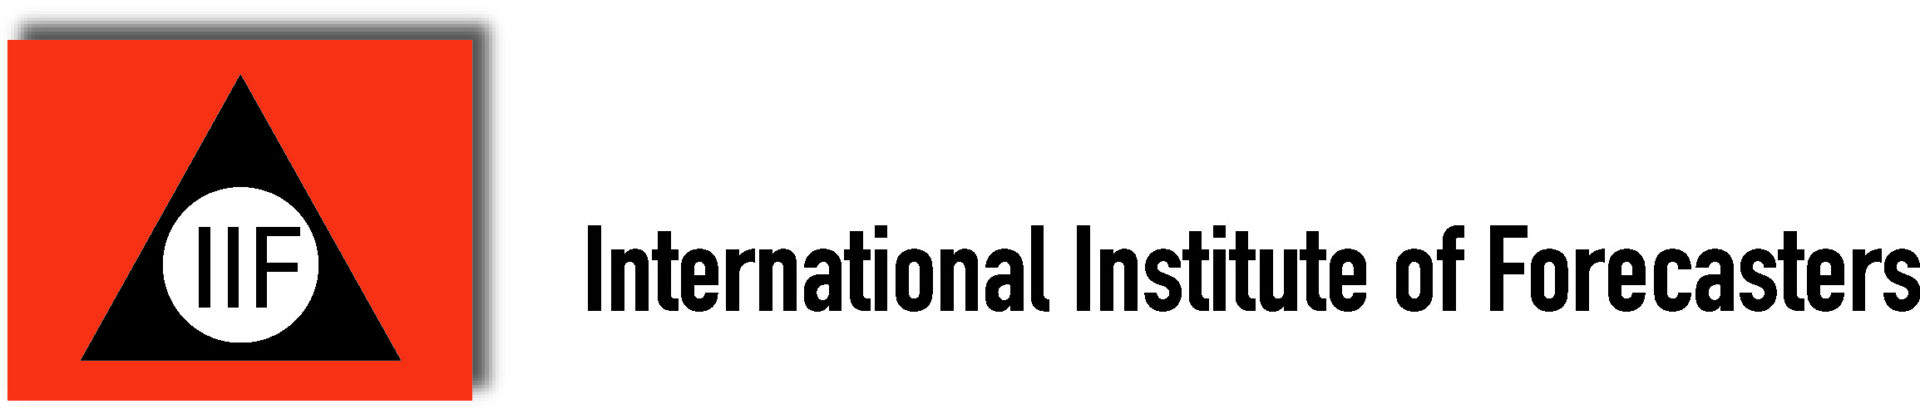 IIF | International Institute of Forecasters